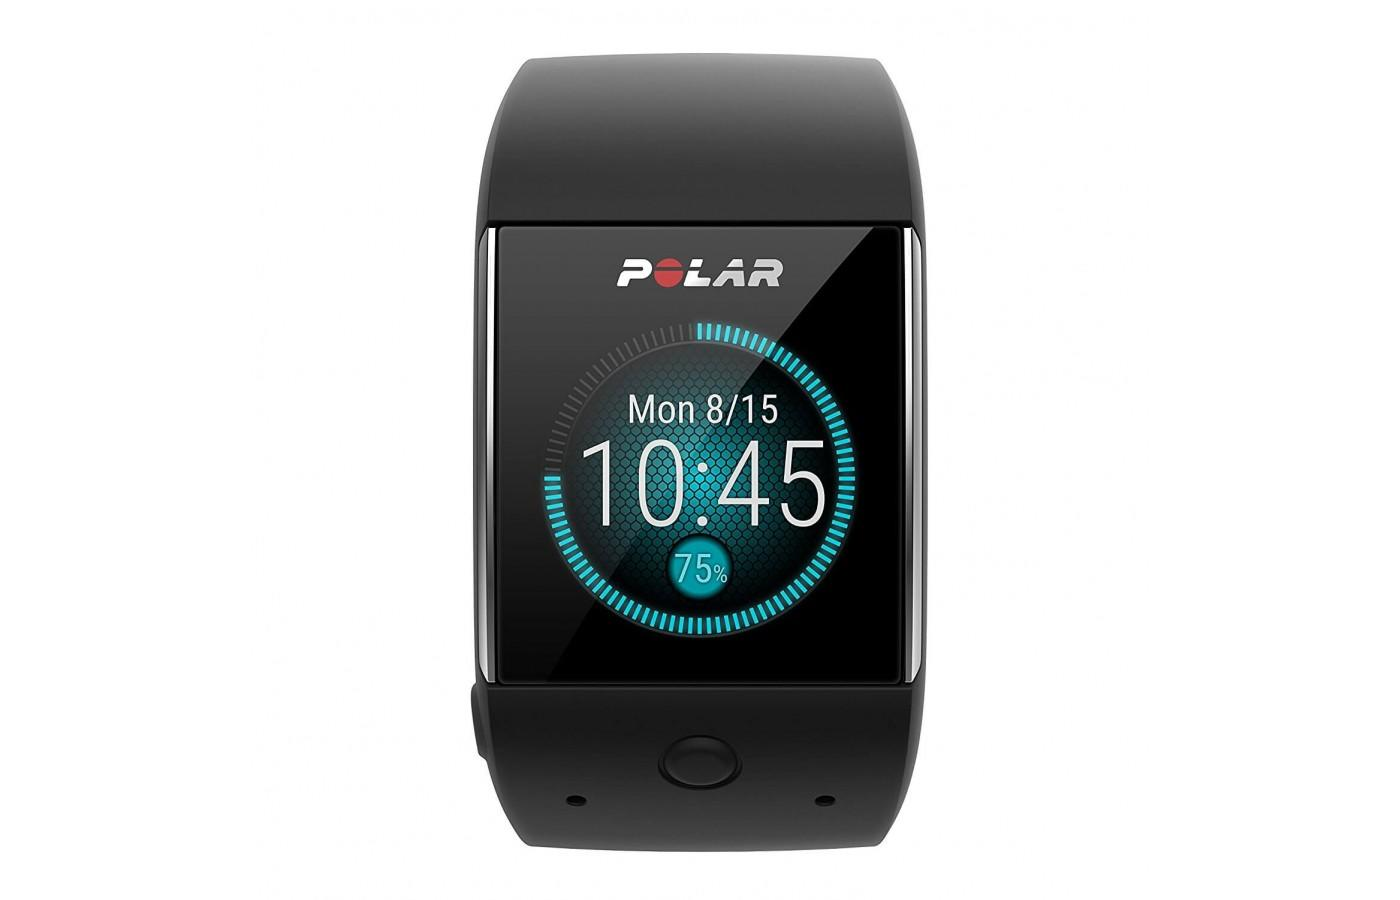 the Polar M600 is a versatile fitness tracker and smartwatch